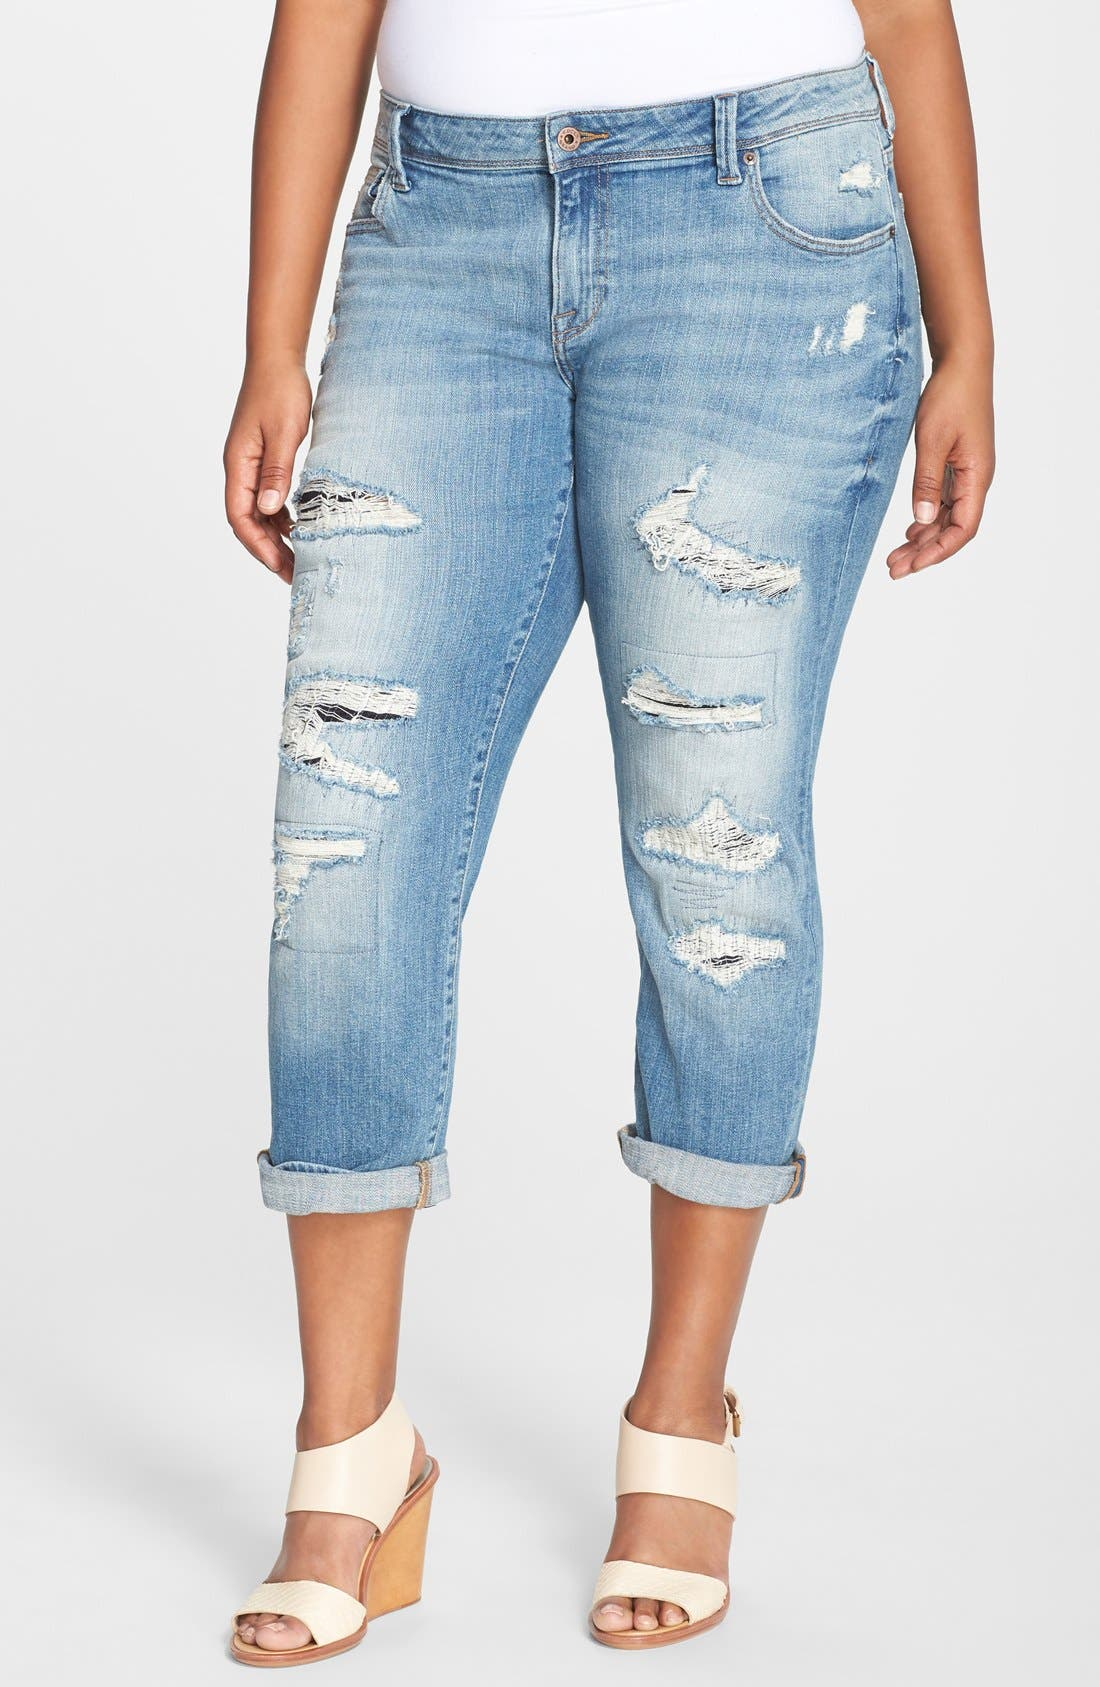 Alternate Image 1 Selected - Lucky Brand 'Reese' Ripped Boyfriend Jeans (San Marcos) (Plus Size)